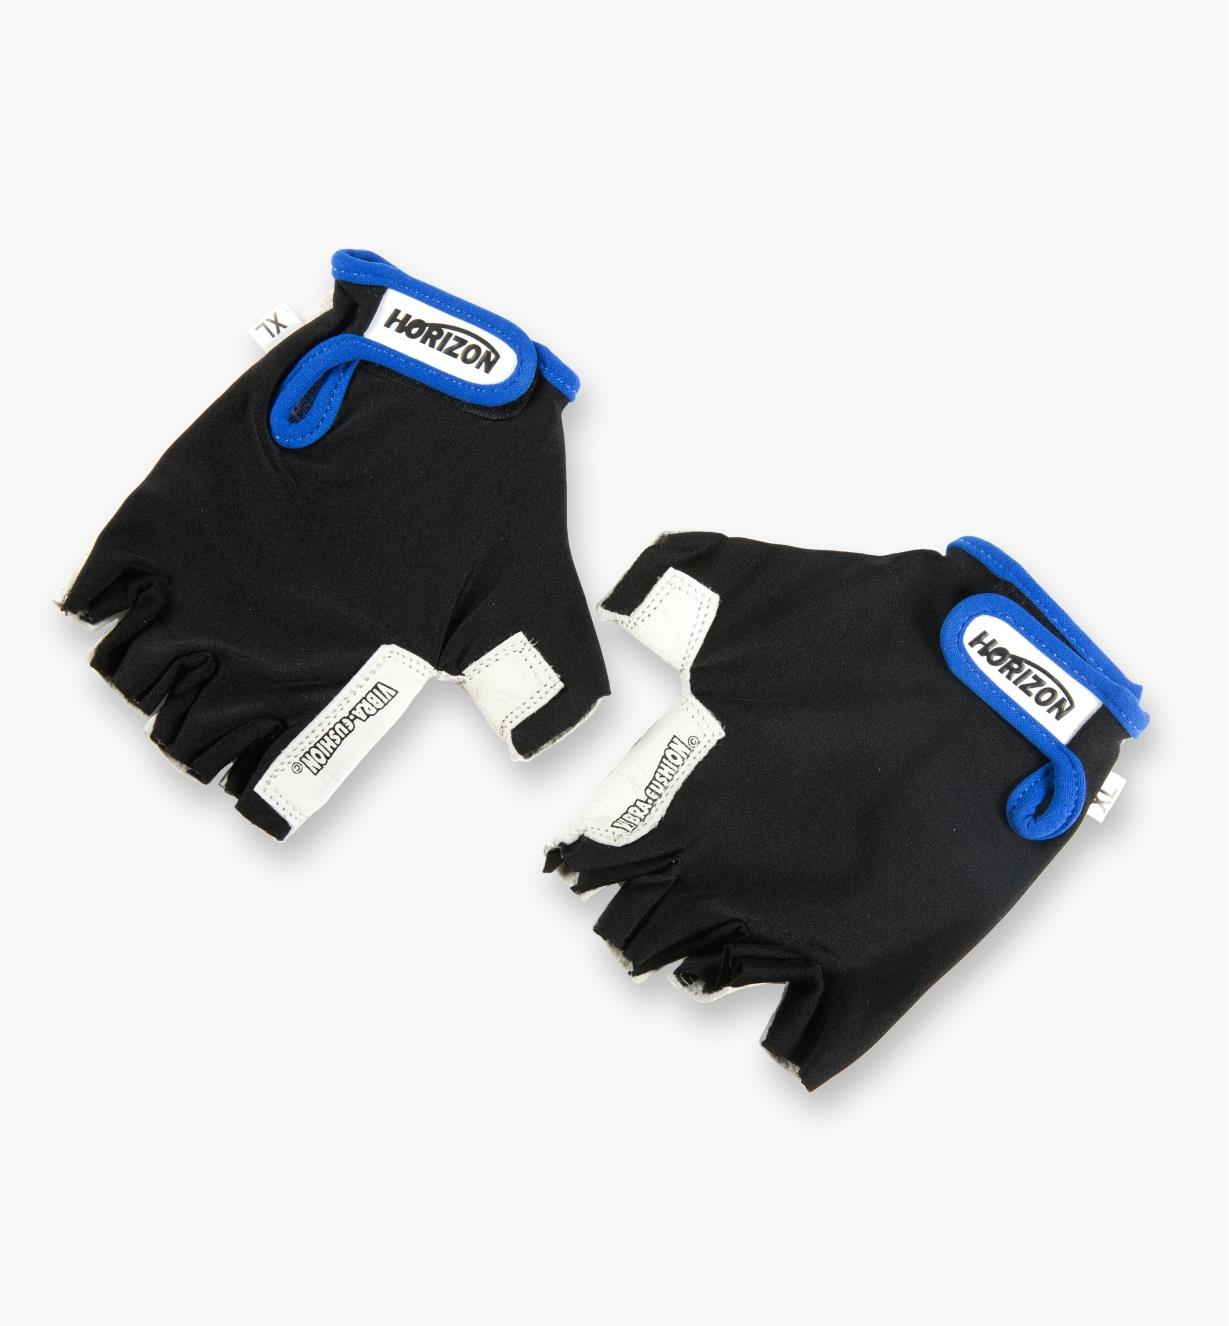 67K8626 - Pr. Anti-Vibration Gloves, X-Large